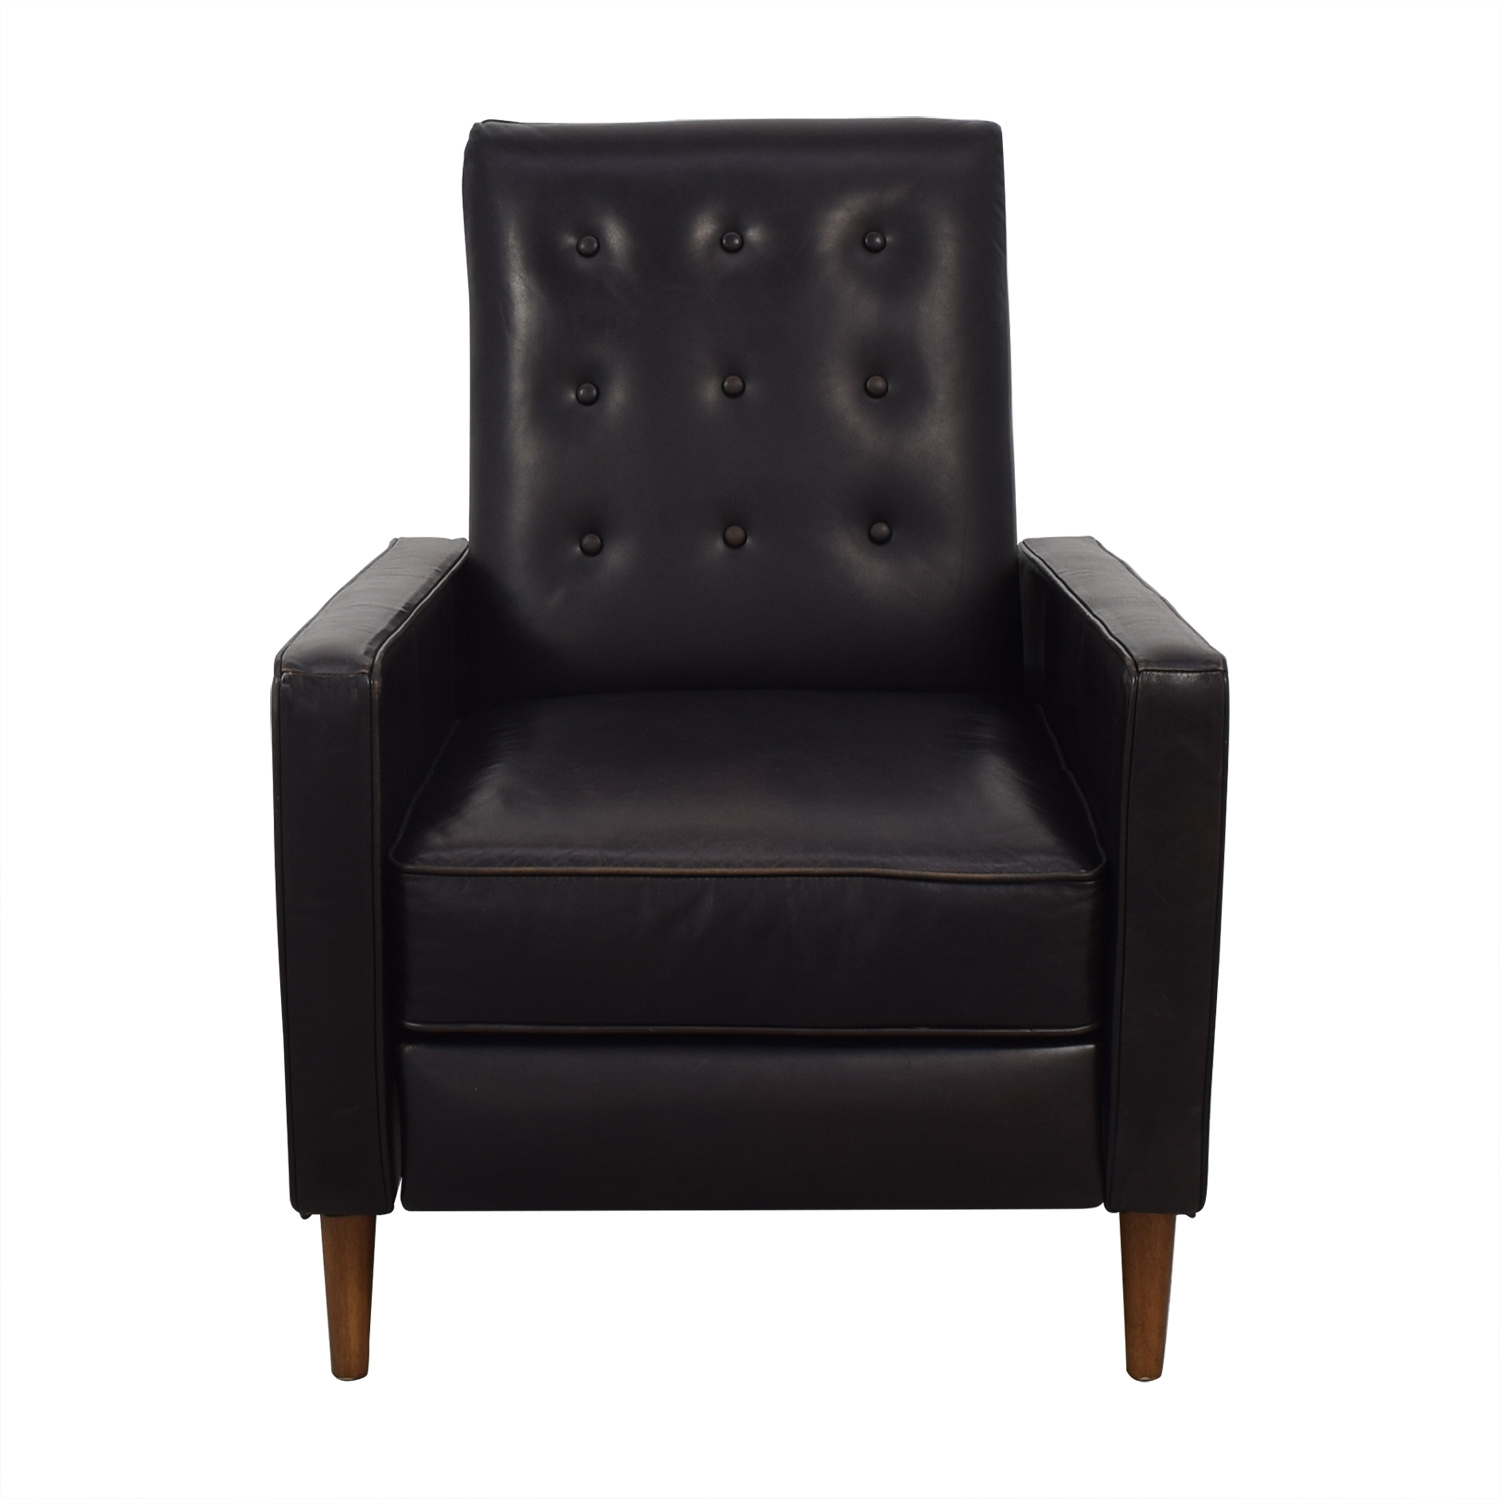 West Elm West Elm Rhys Mid Century Recliner Accent Chairs